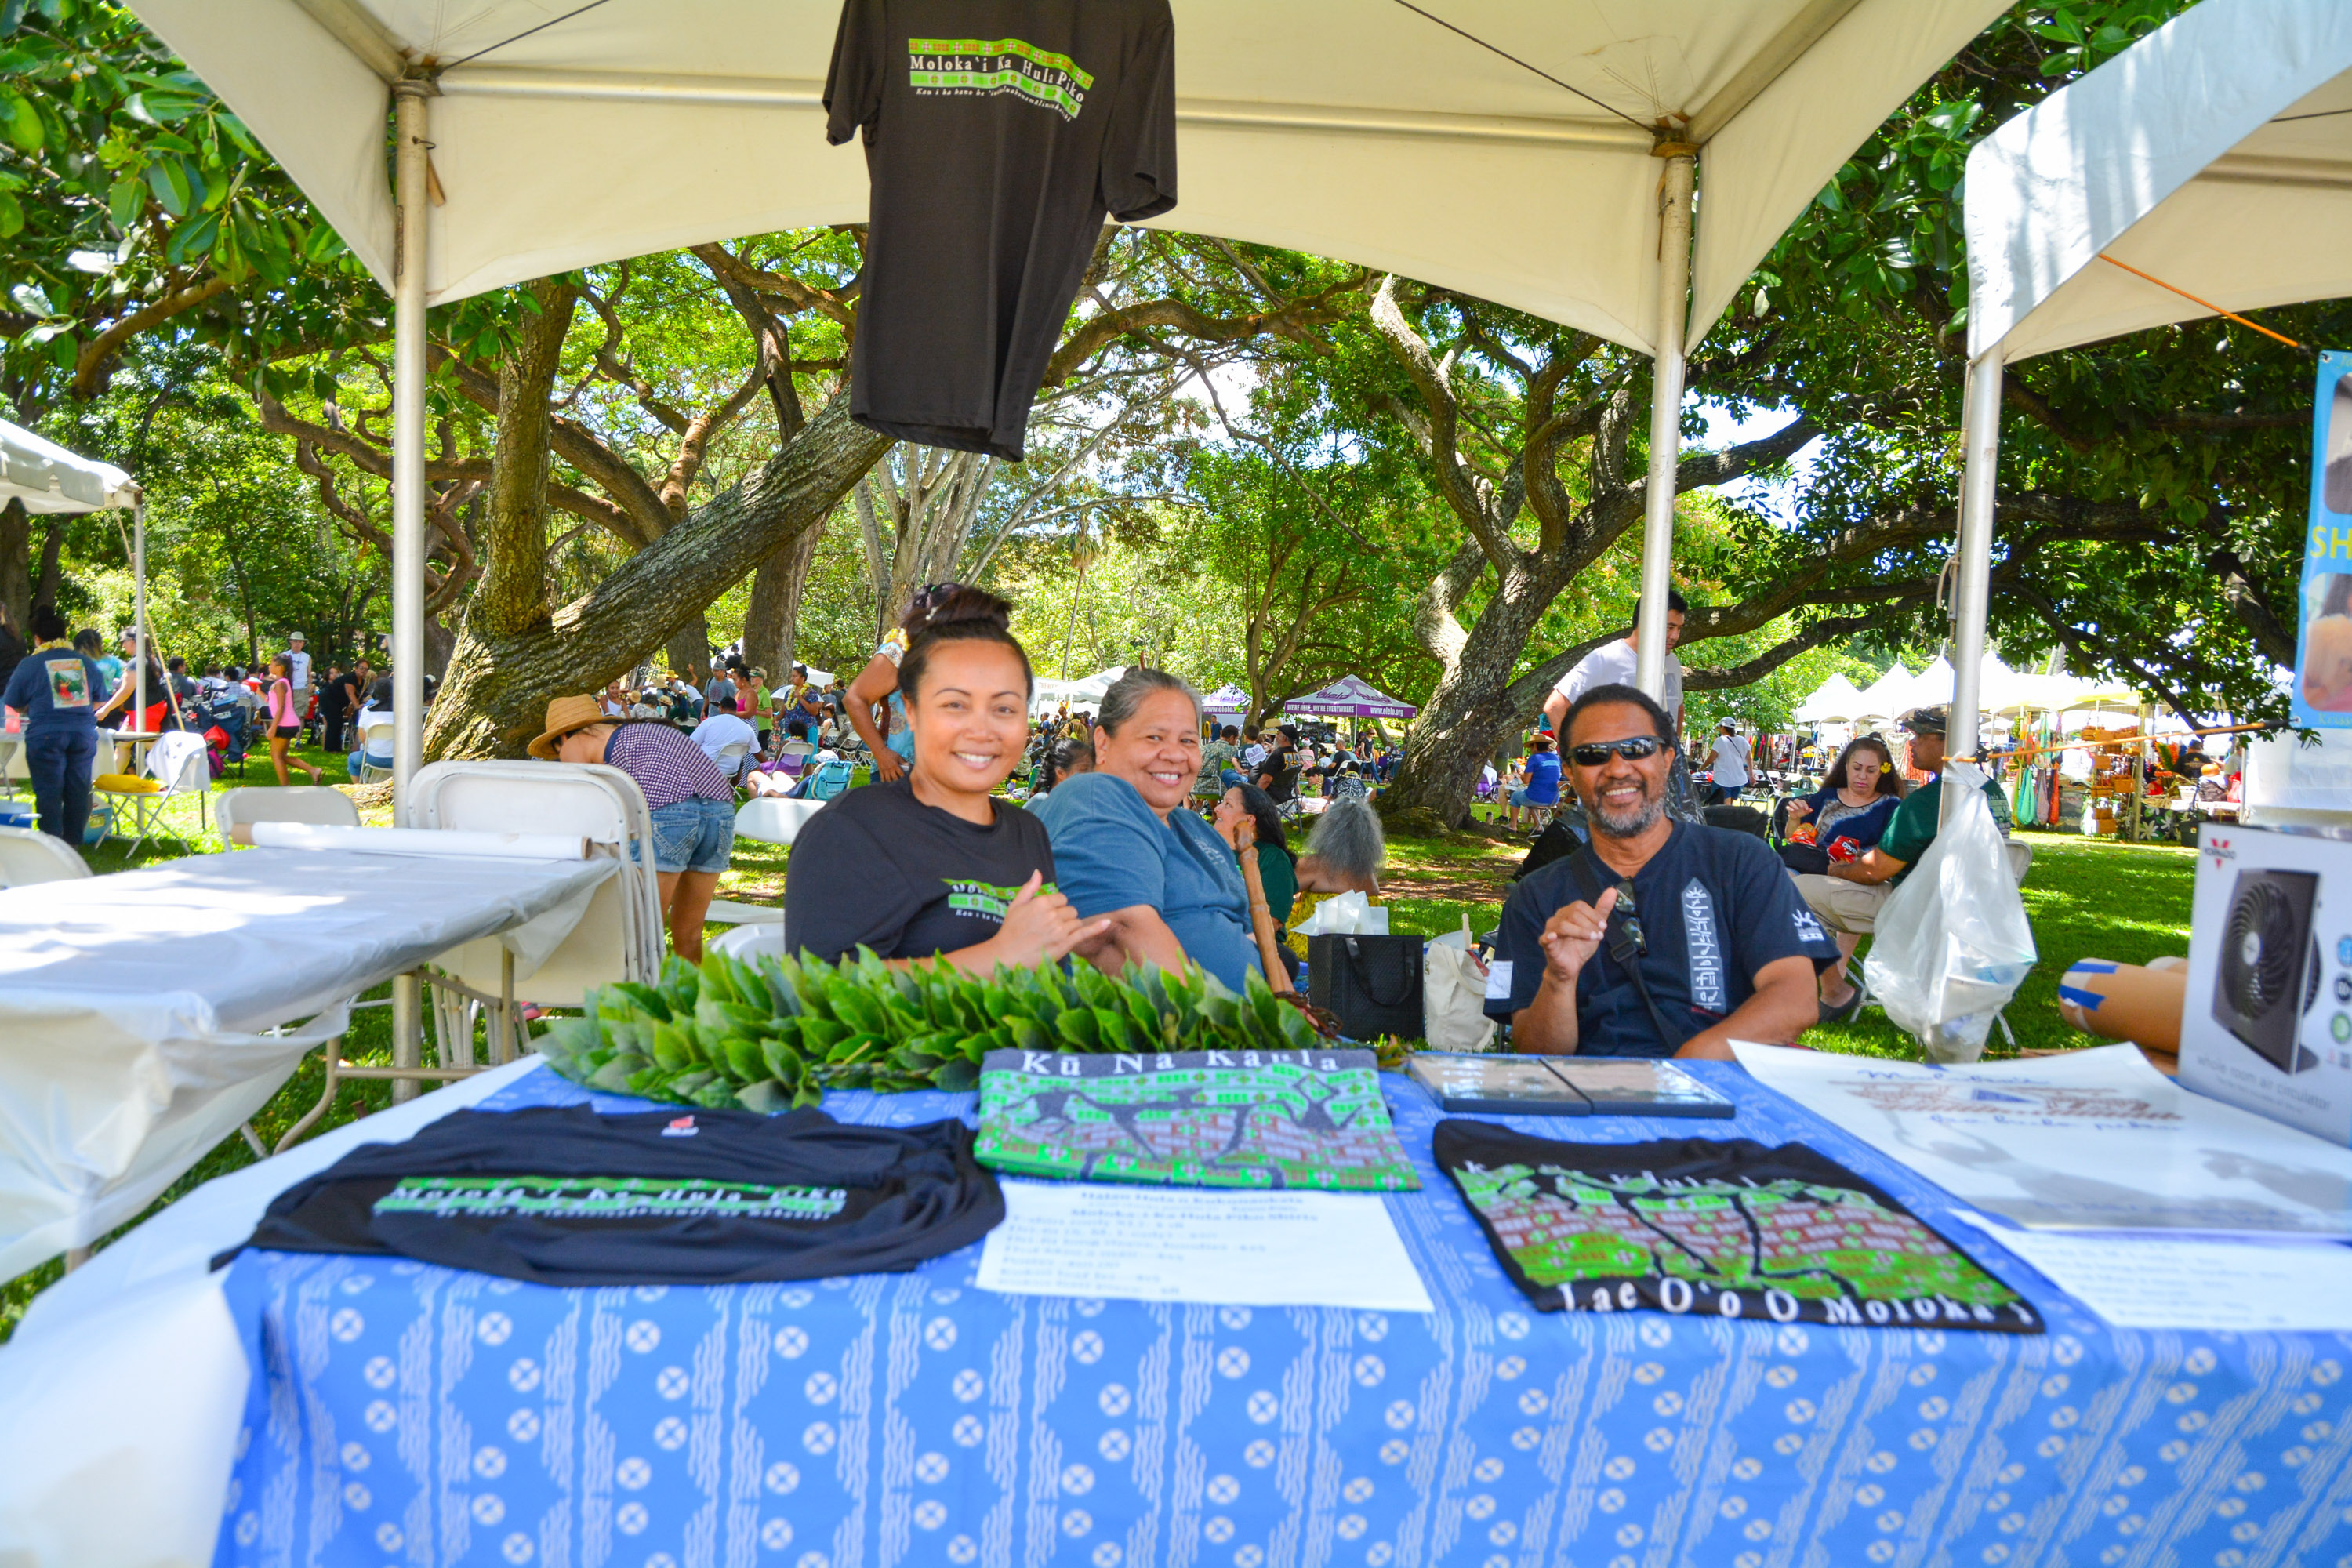 Kaana Kapu raises funds for Moloka`i Ka Hula Piko E